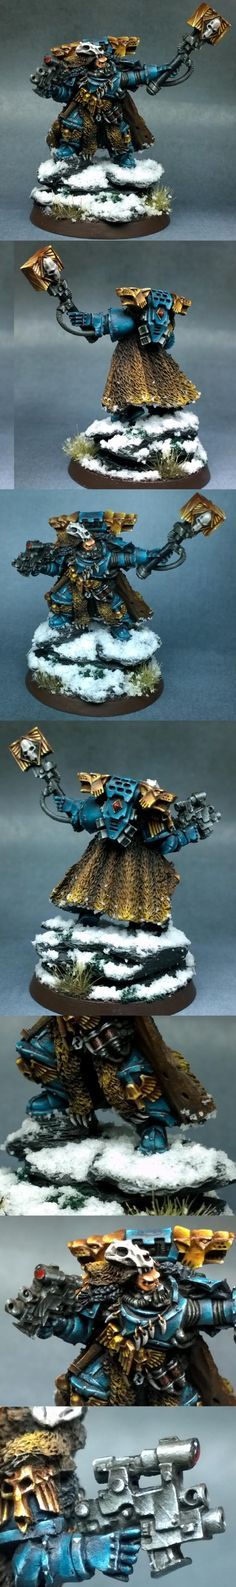 Gamesday, Non-Metallic Metal, Rune Priest, Snow, Space Marines, Space Wolves, Warhammer 40,000, Warhammer Fantasy, Wolf Priest - Priest - Gallery - DakkaDakka | You better boost before you post.